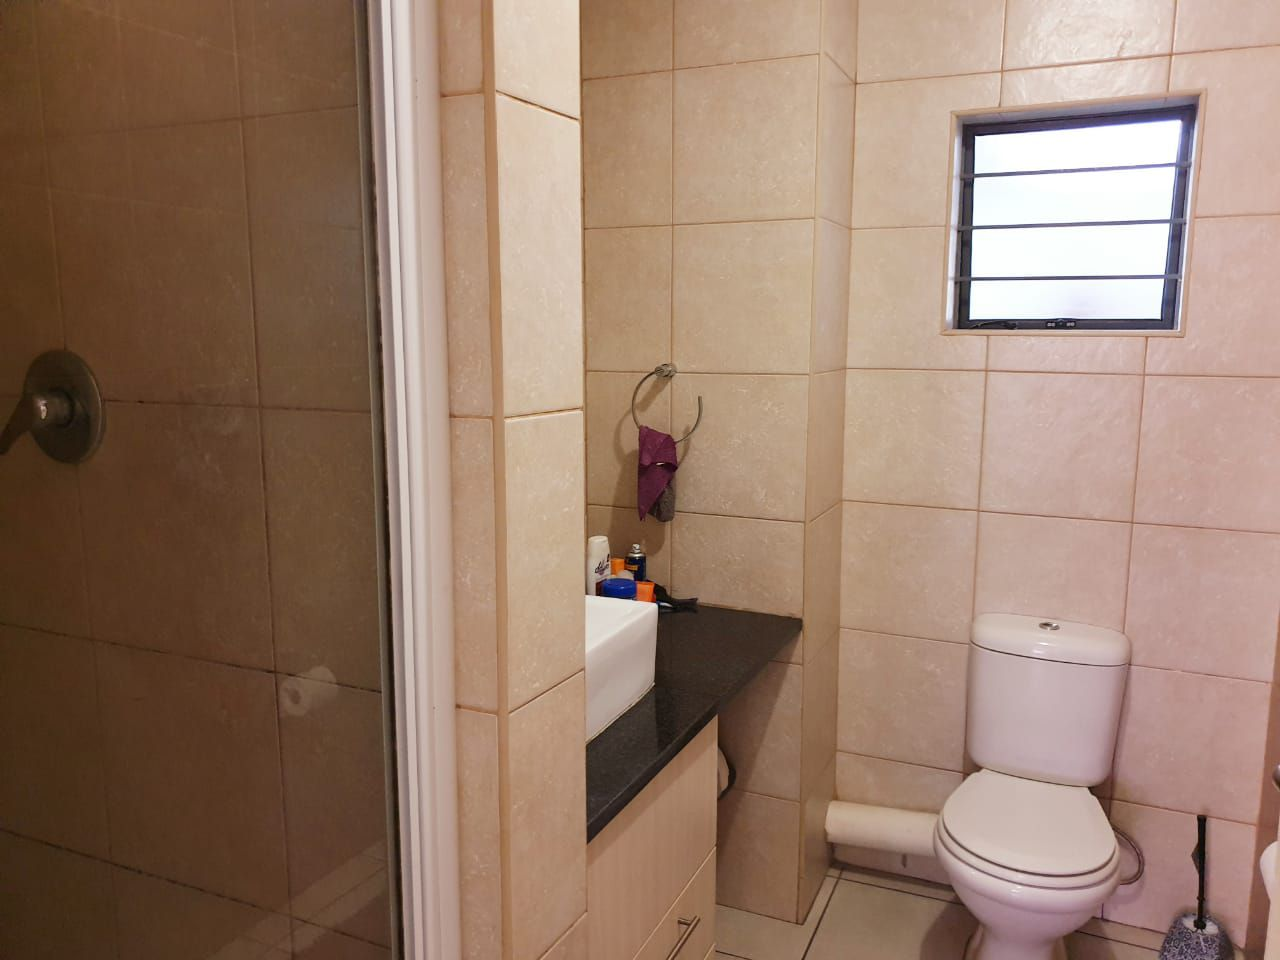 Apartment in Bult - WhatsApp Image 2019-09-17 at 12.30.08 (1).jpeg